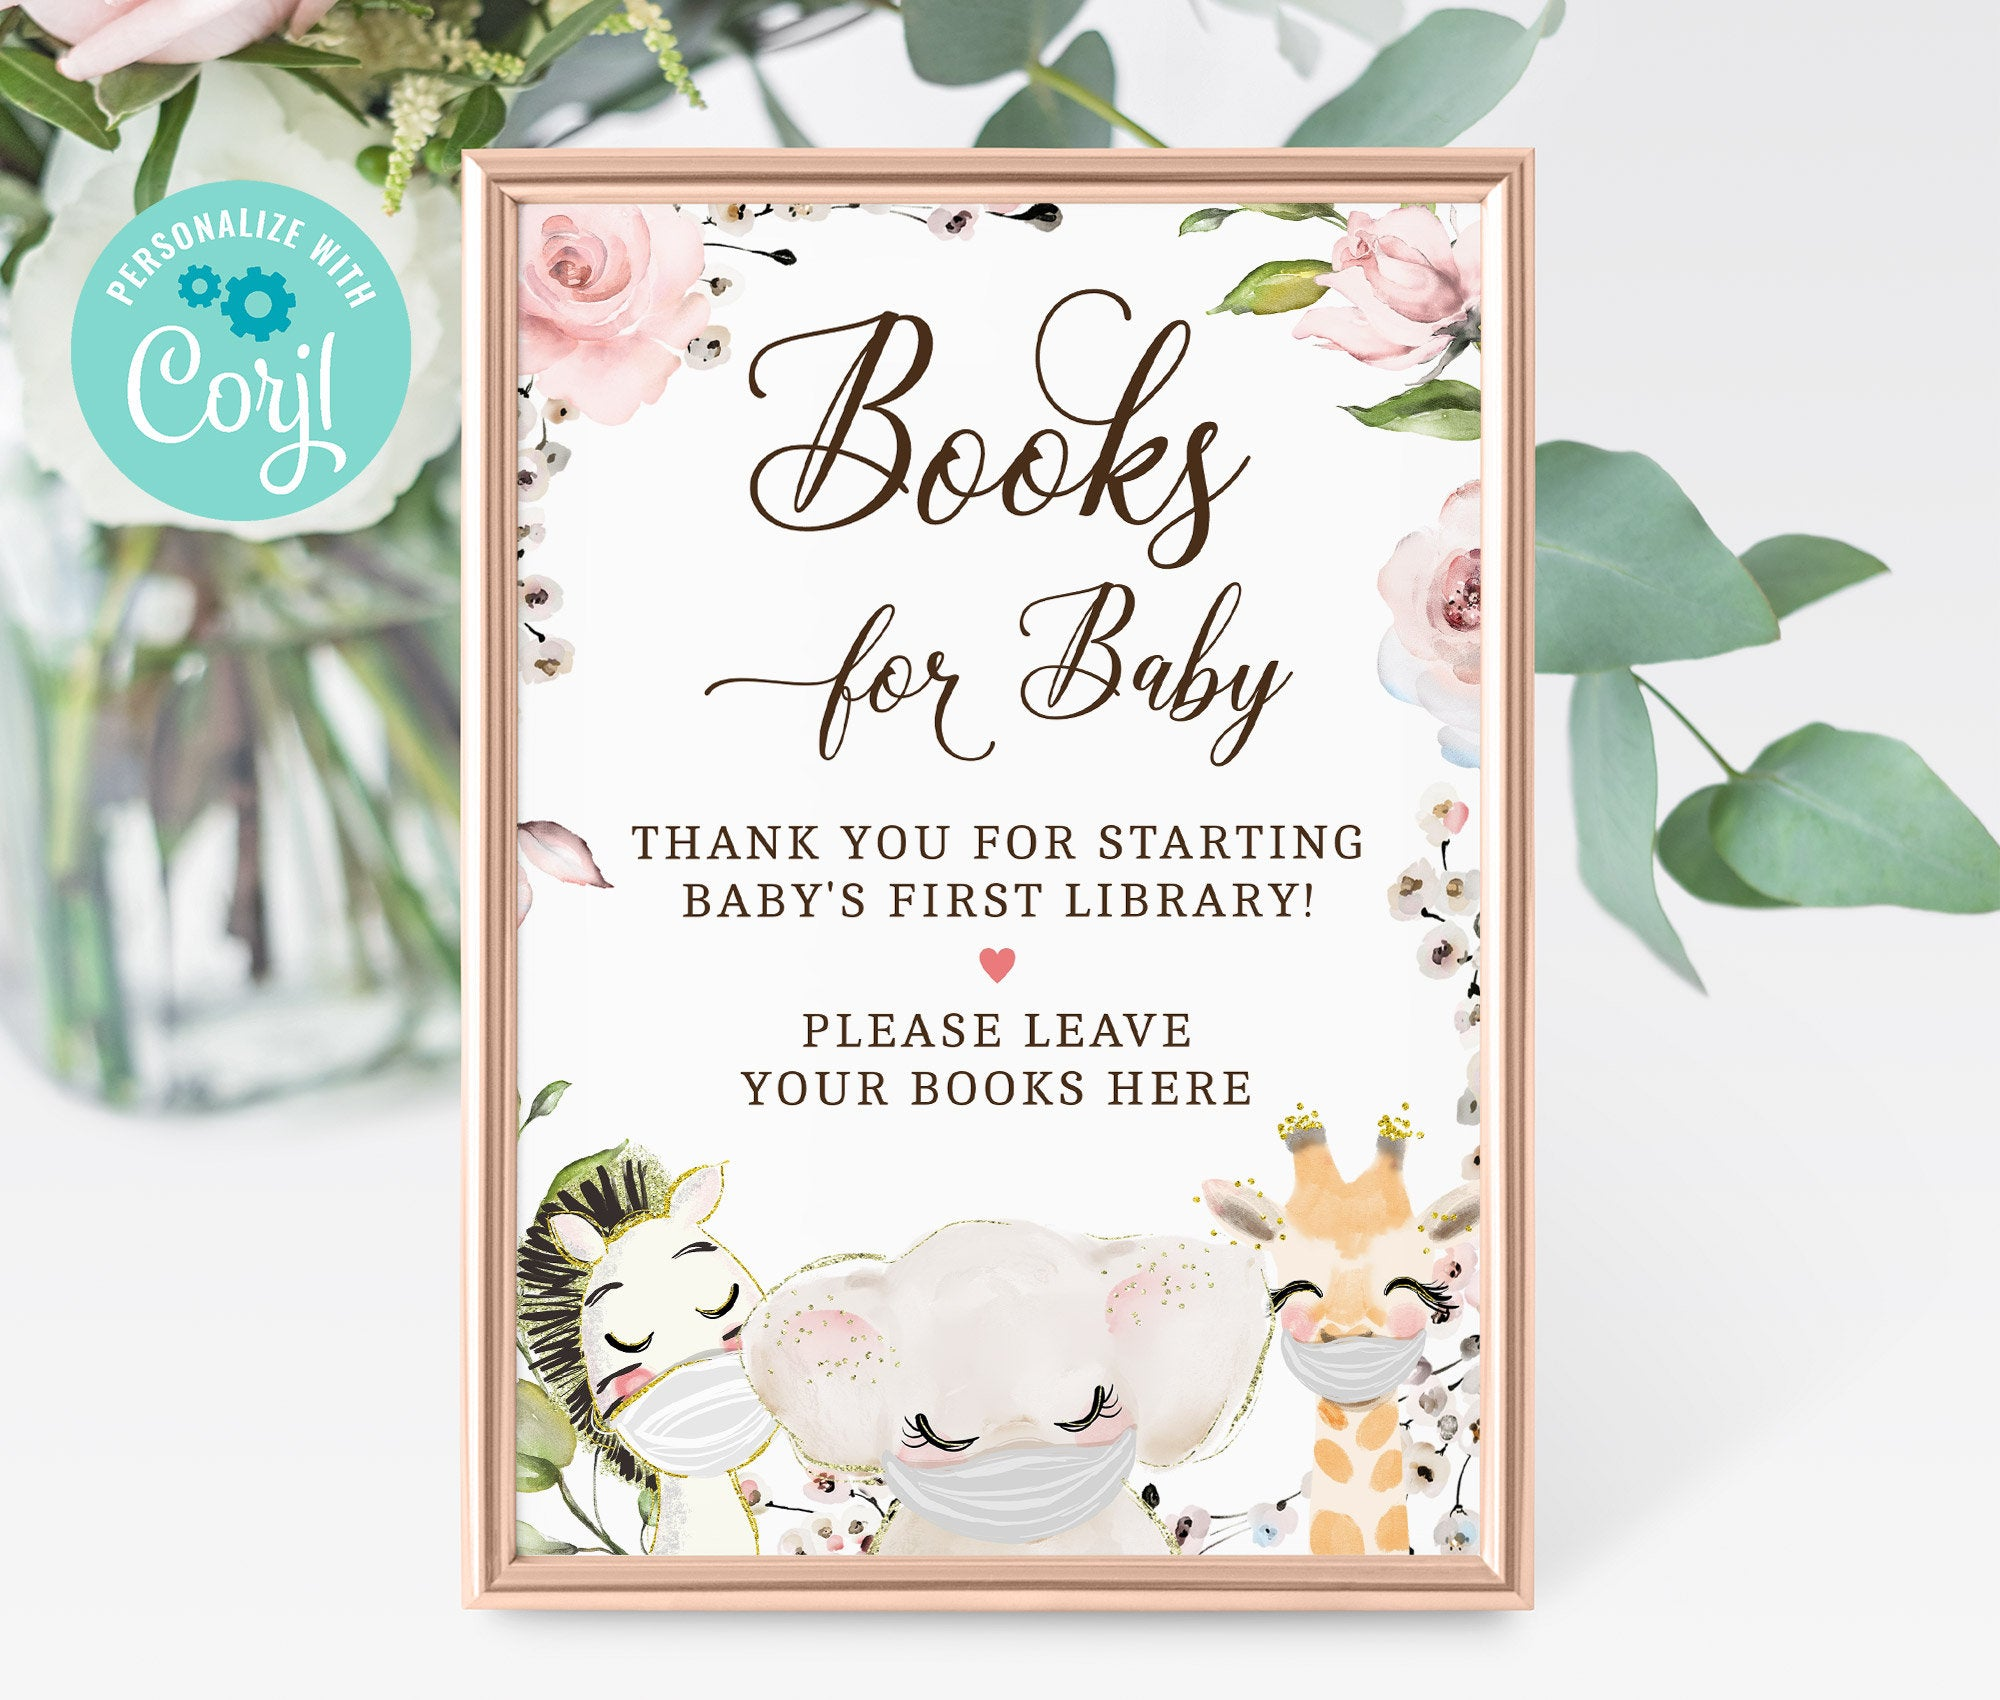 Books for Baby Sign, Printable Baby Shower Book for Baby Sign, Baby's Library, Animals Masked shower, Editable, Instant Download 3602 BS3601